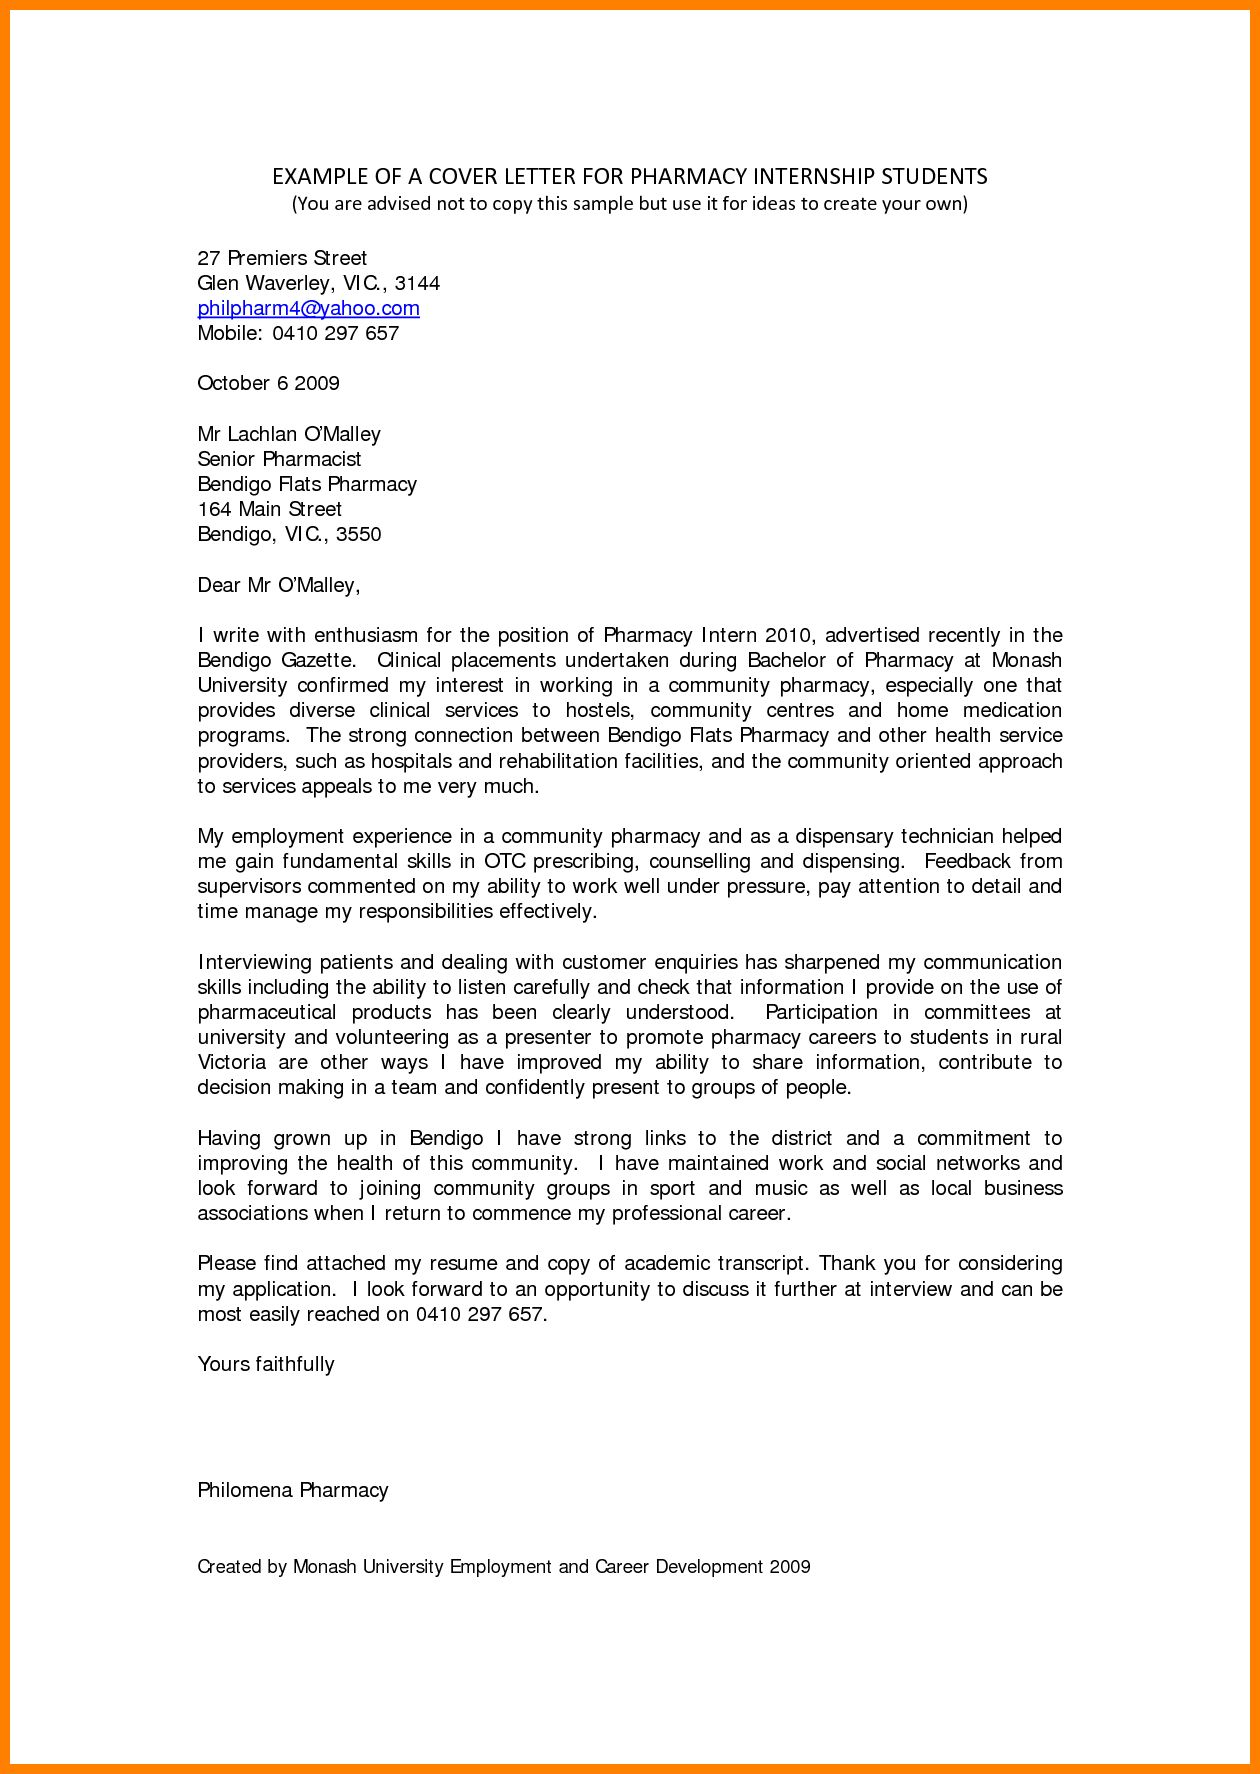 30 Cover Letter For Internship Writing A Cover Letter Cover Letter For Internship Cover Letter